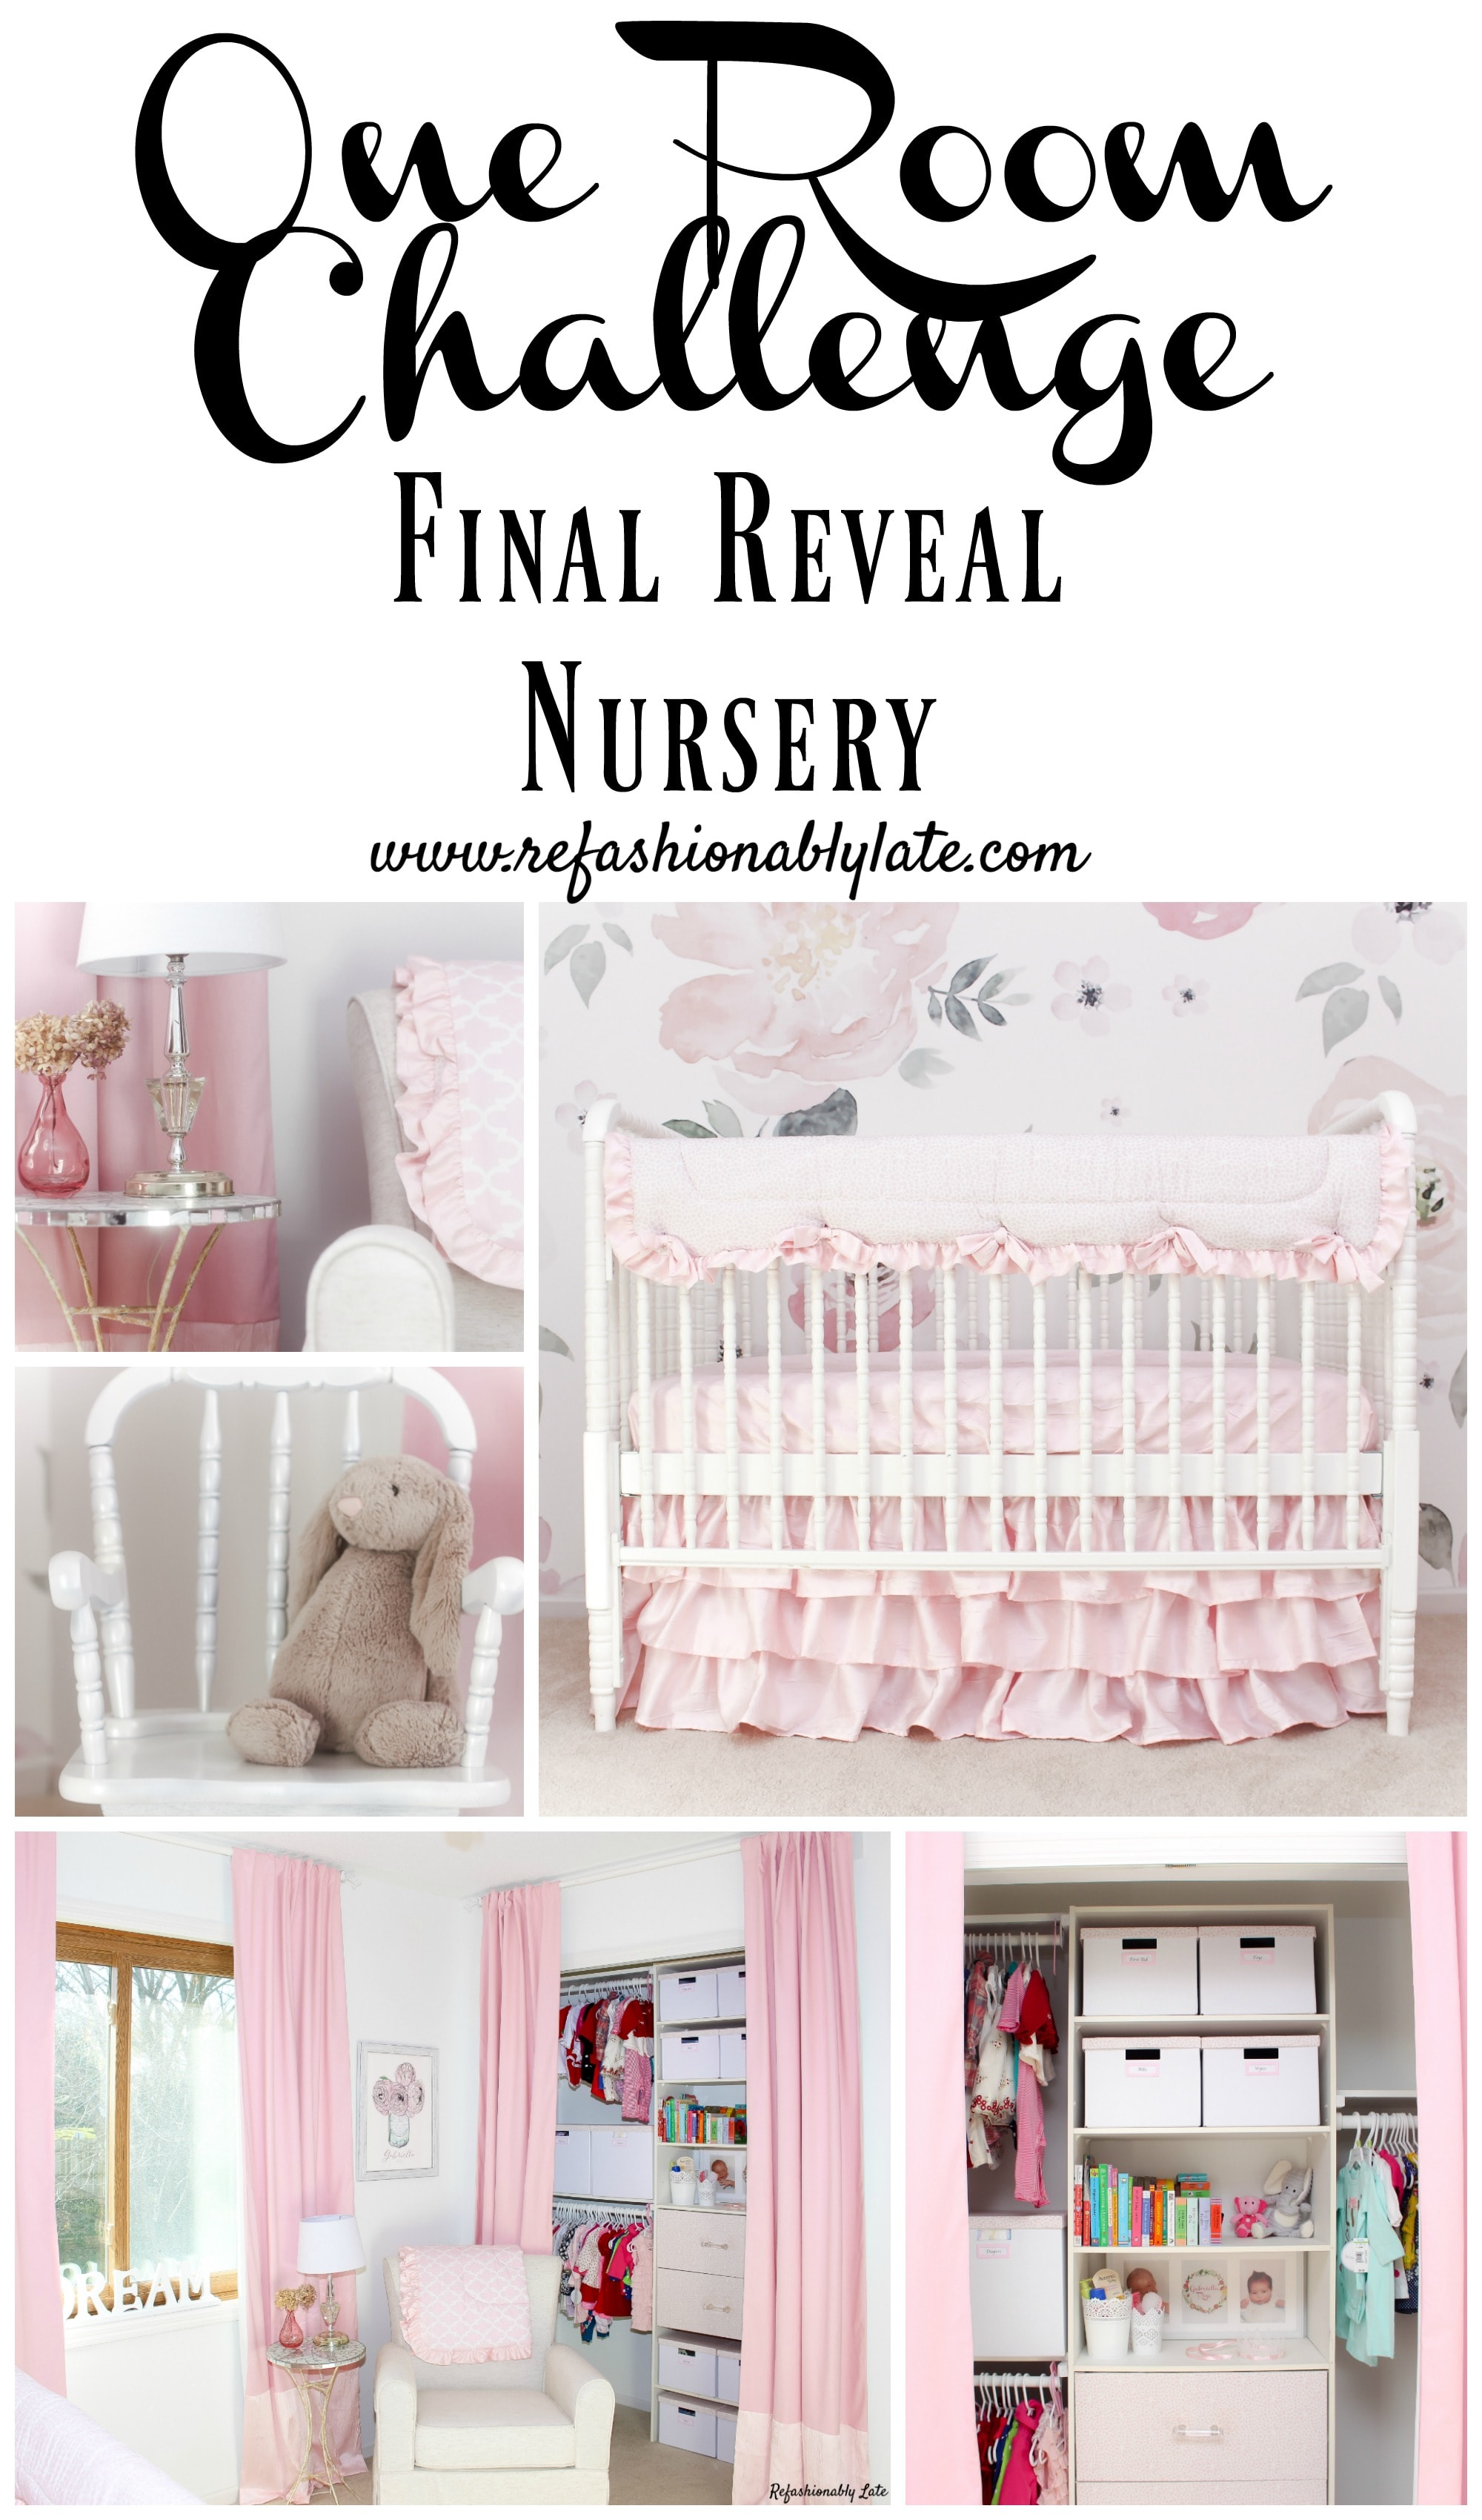 One Room Challenge Final Reveal Nursery Refashionably Late